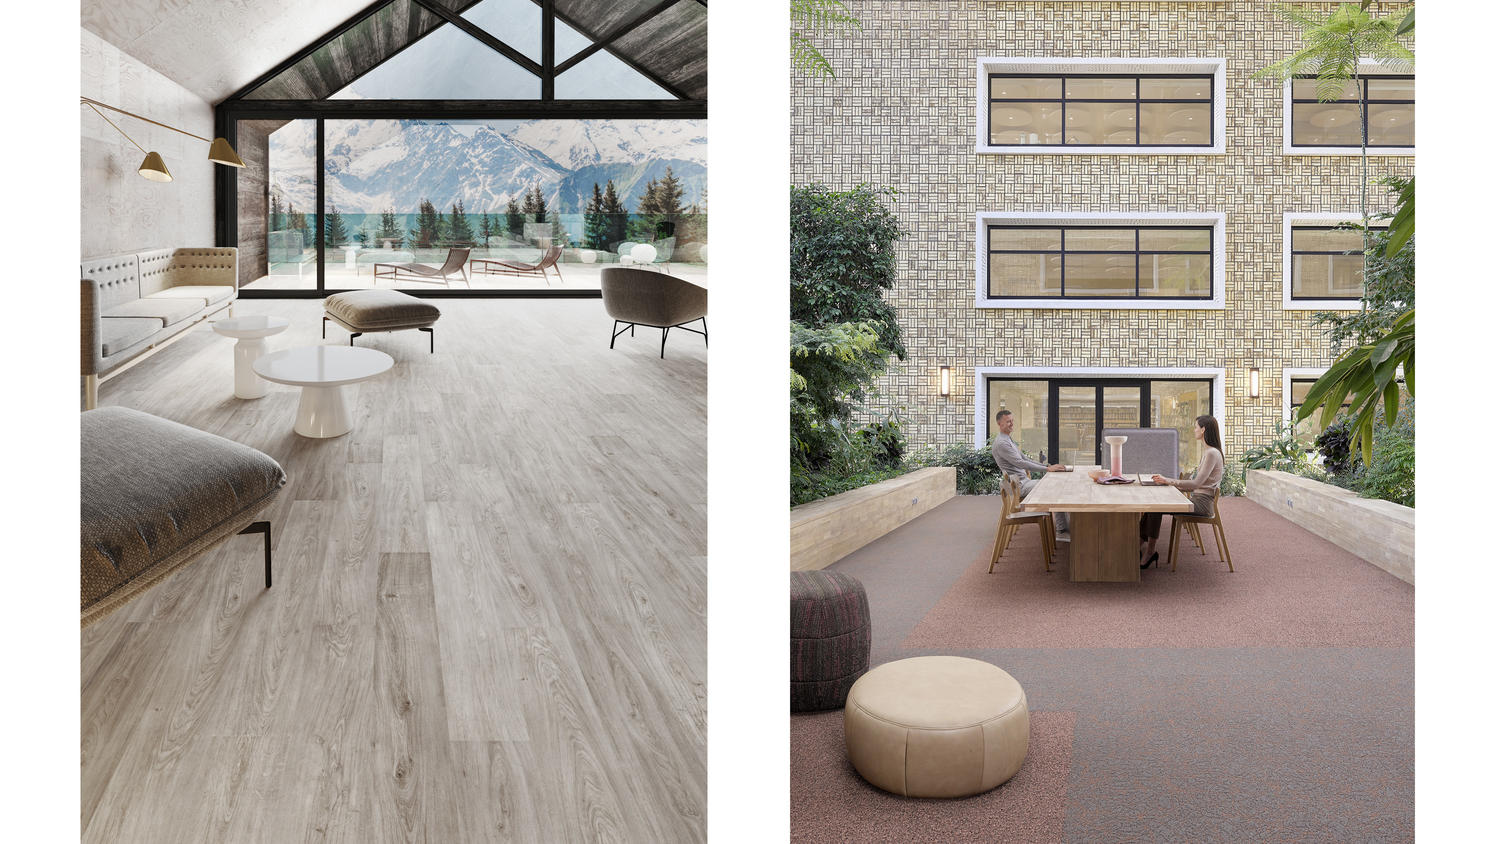 Using recycled content in flooring